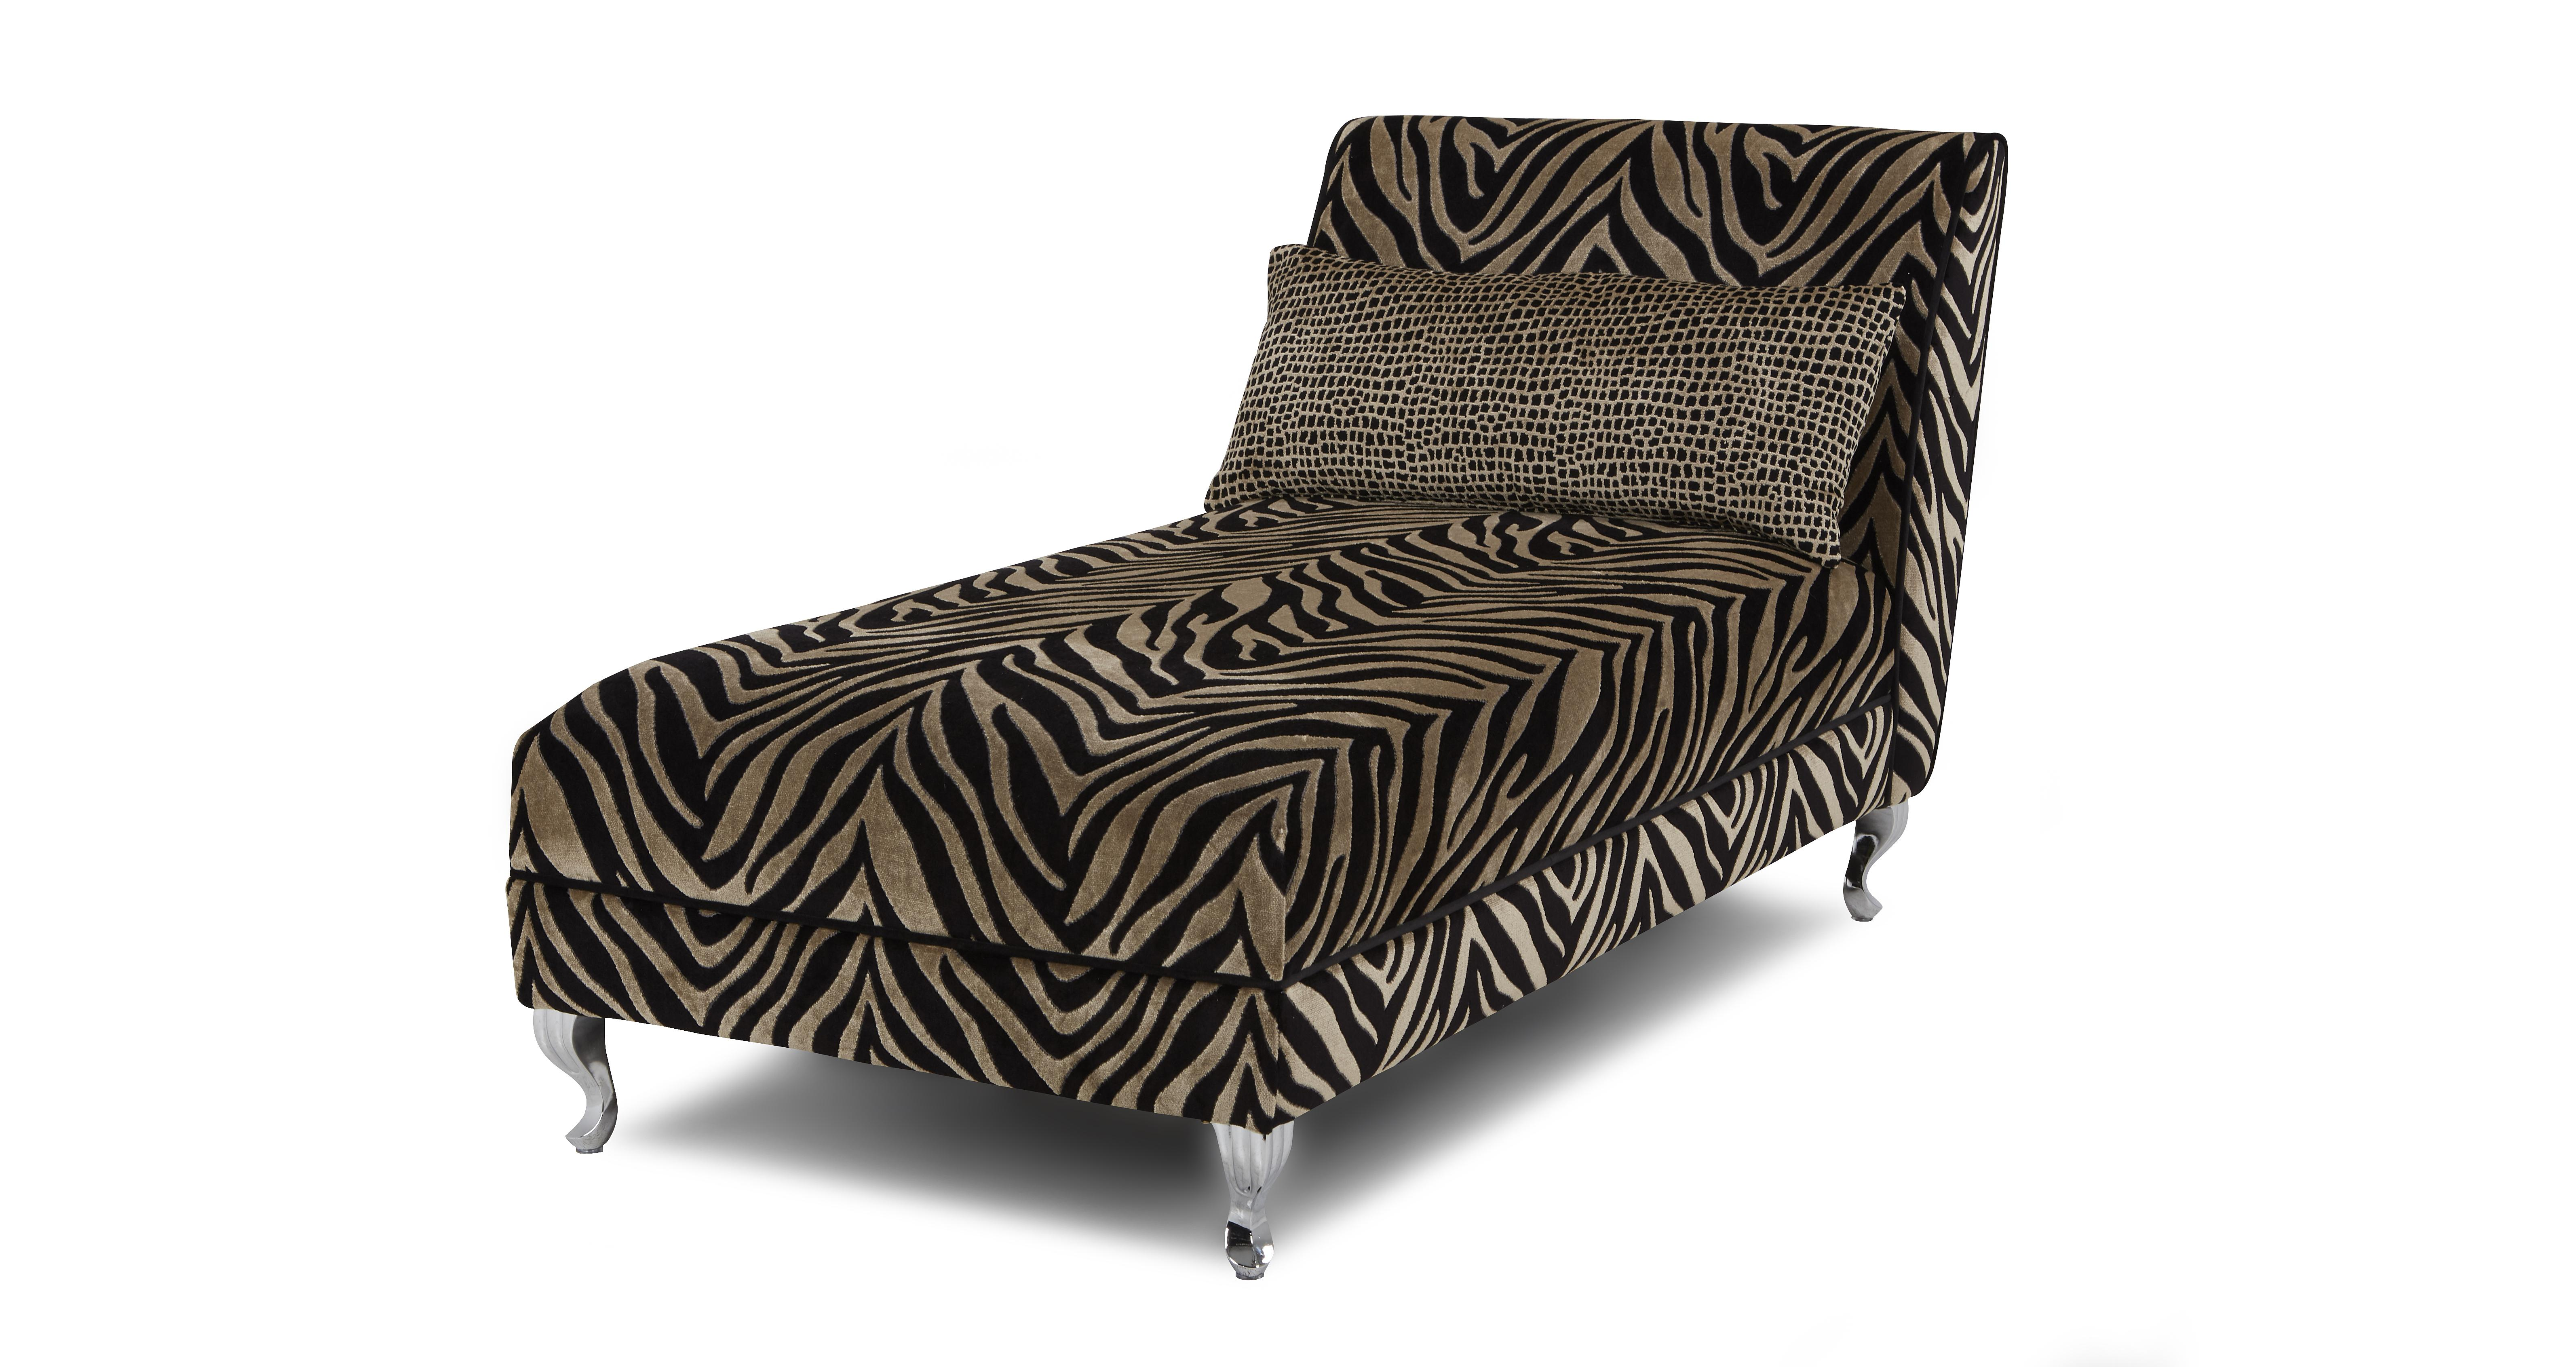 Madagascar tiger pattern chaise longue dfs for Chaise longue dfs